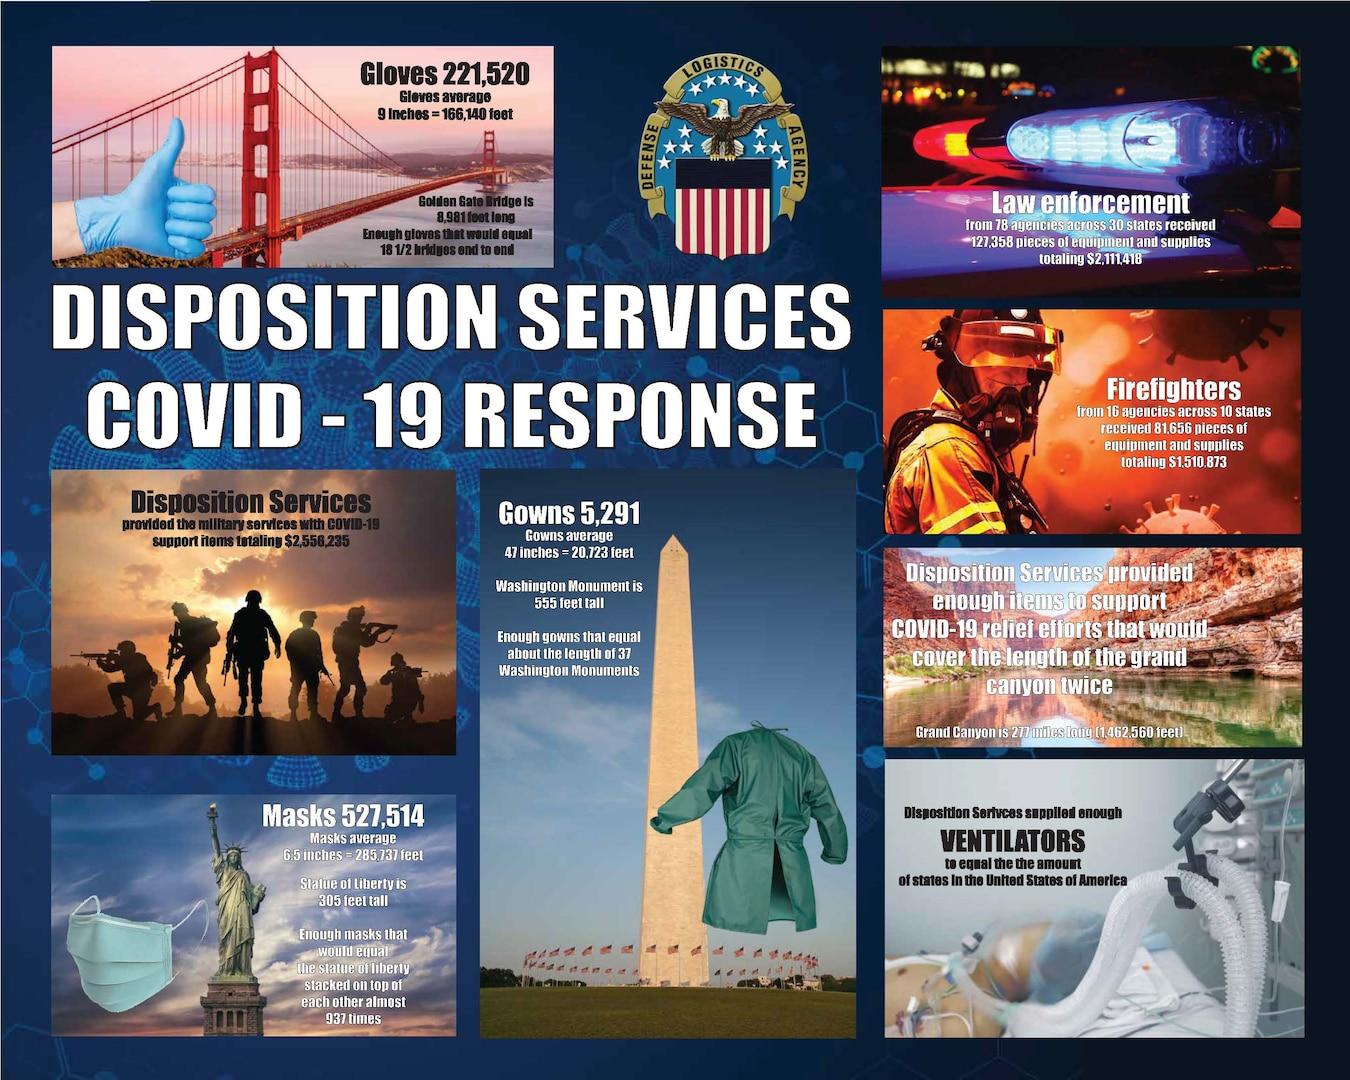 Infographic comparing support items to national landmarks such as gloves to the golden gate bridge, mask to the statue of liberty and gowns to the Washington monument.